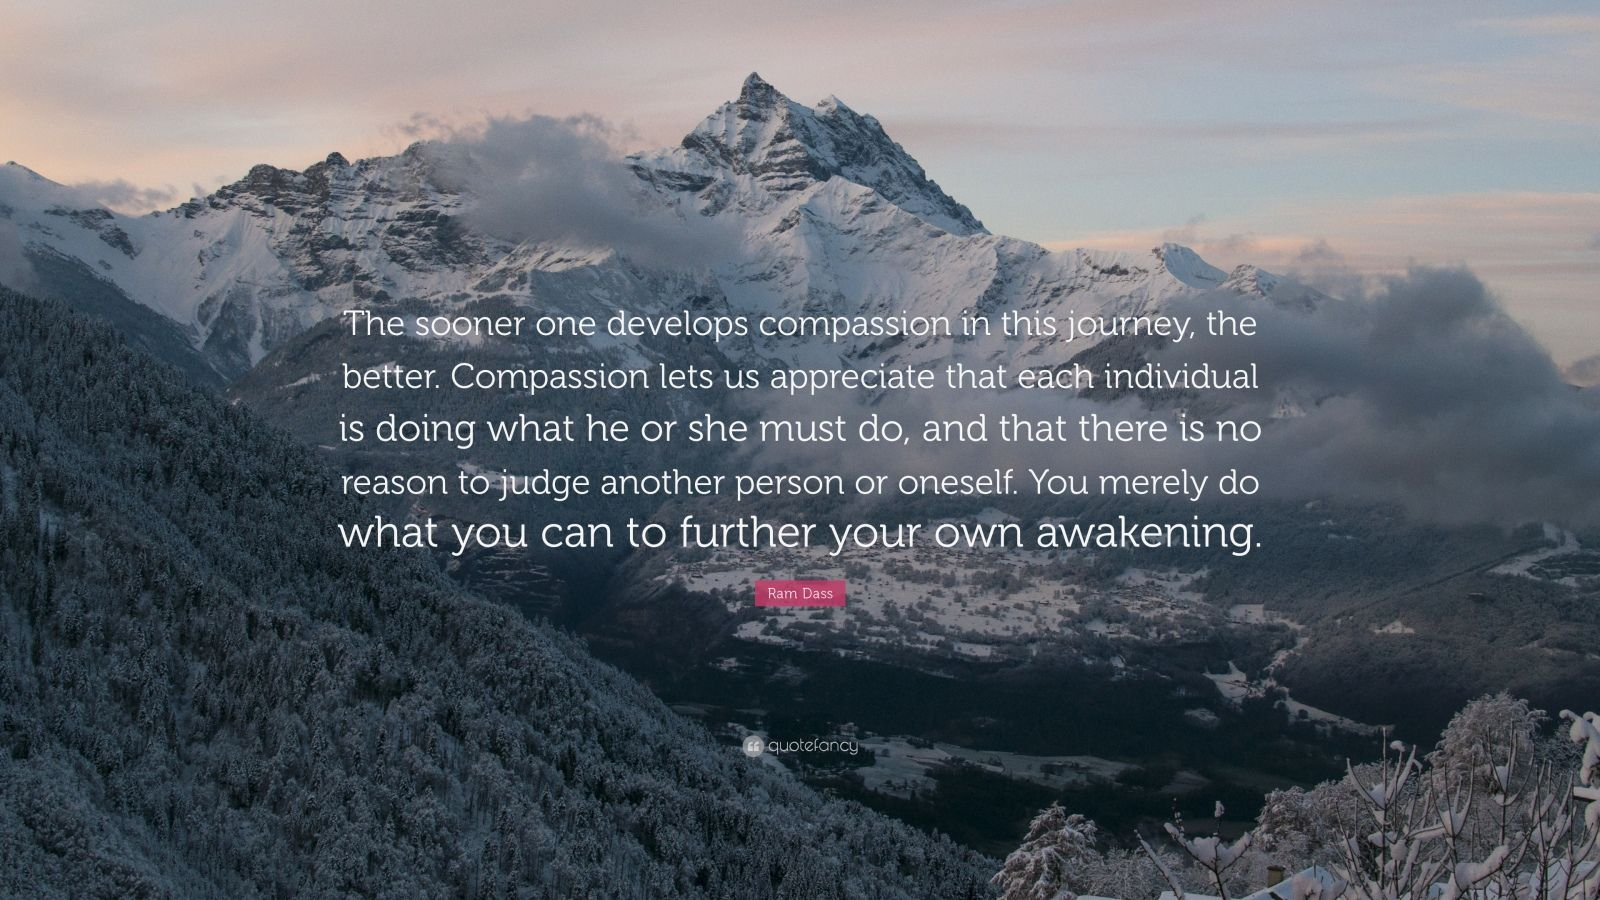 """Ram Dass Quote: """"The sooner one develops compassion in this journey, the better. Compassion lets us appreciate that each individual is doing what he or she must do, and that there is no reason to judge another person or oneself. You merely do what you can to further your own awakening."""""""